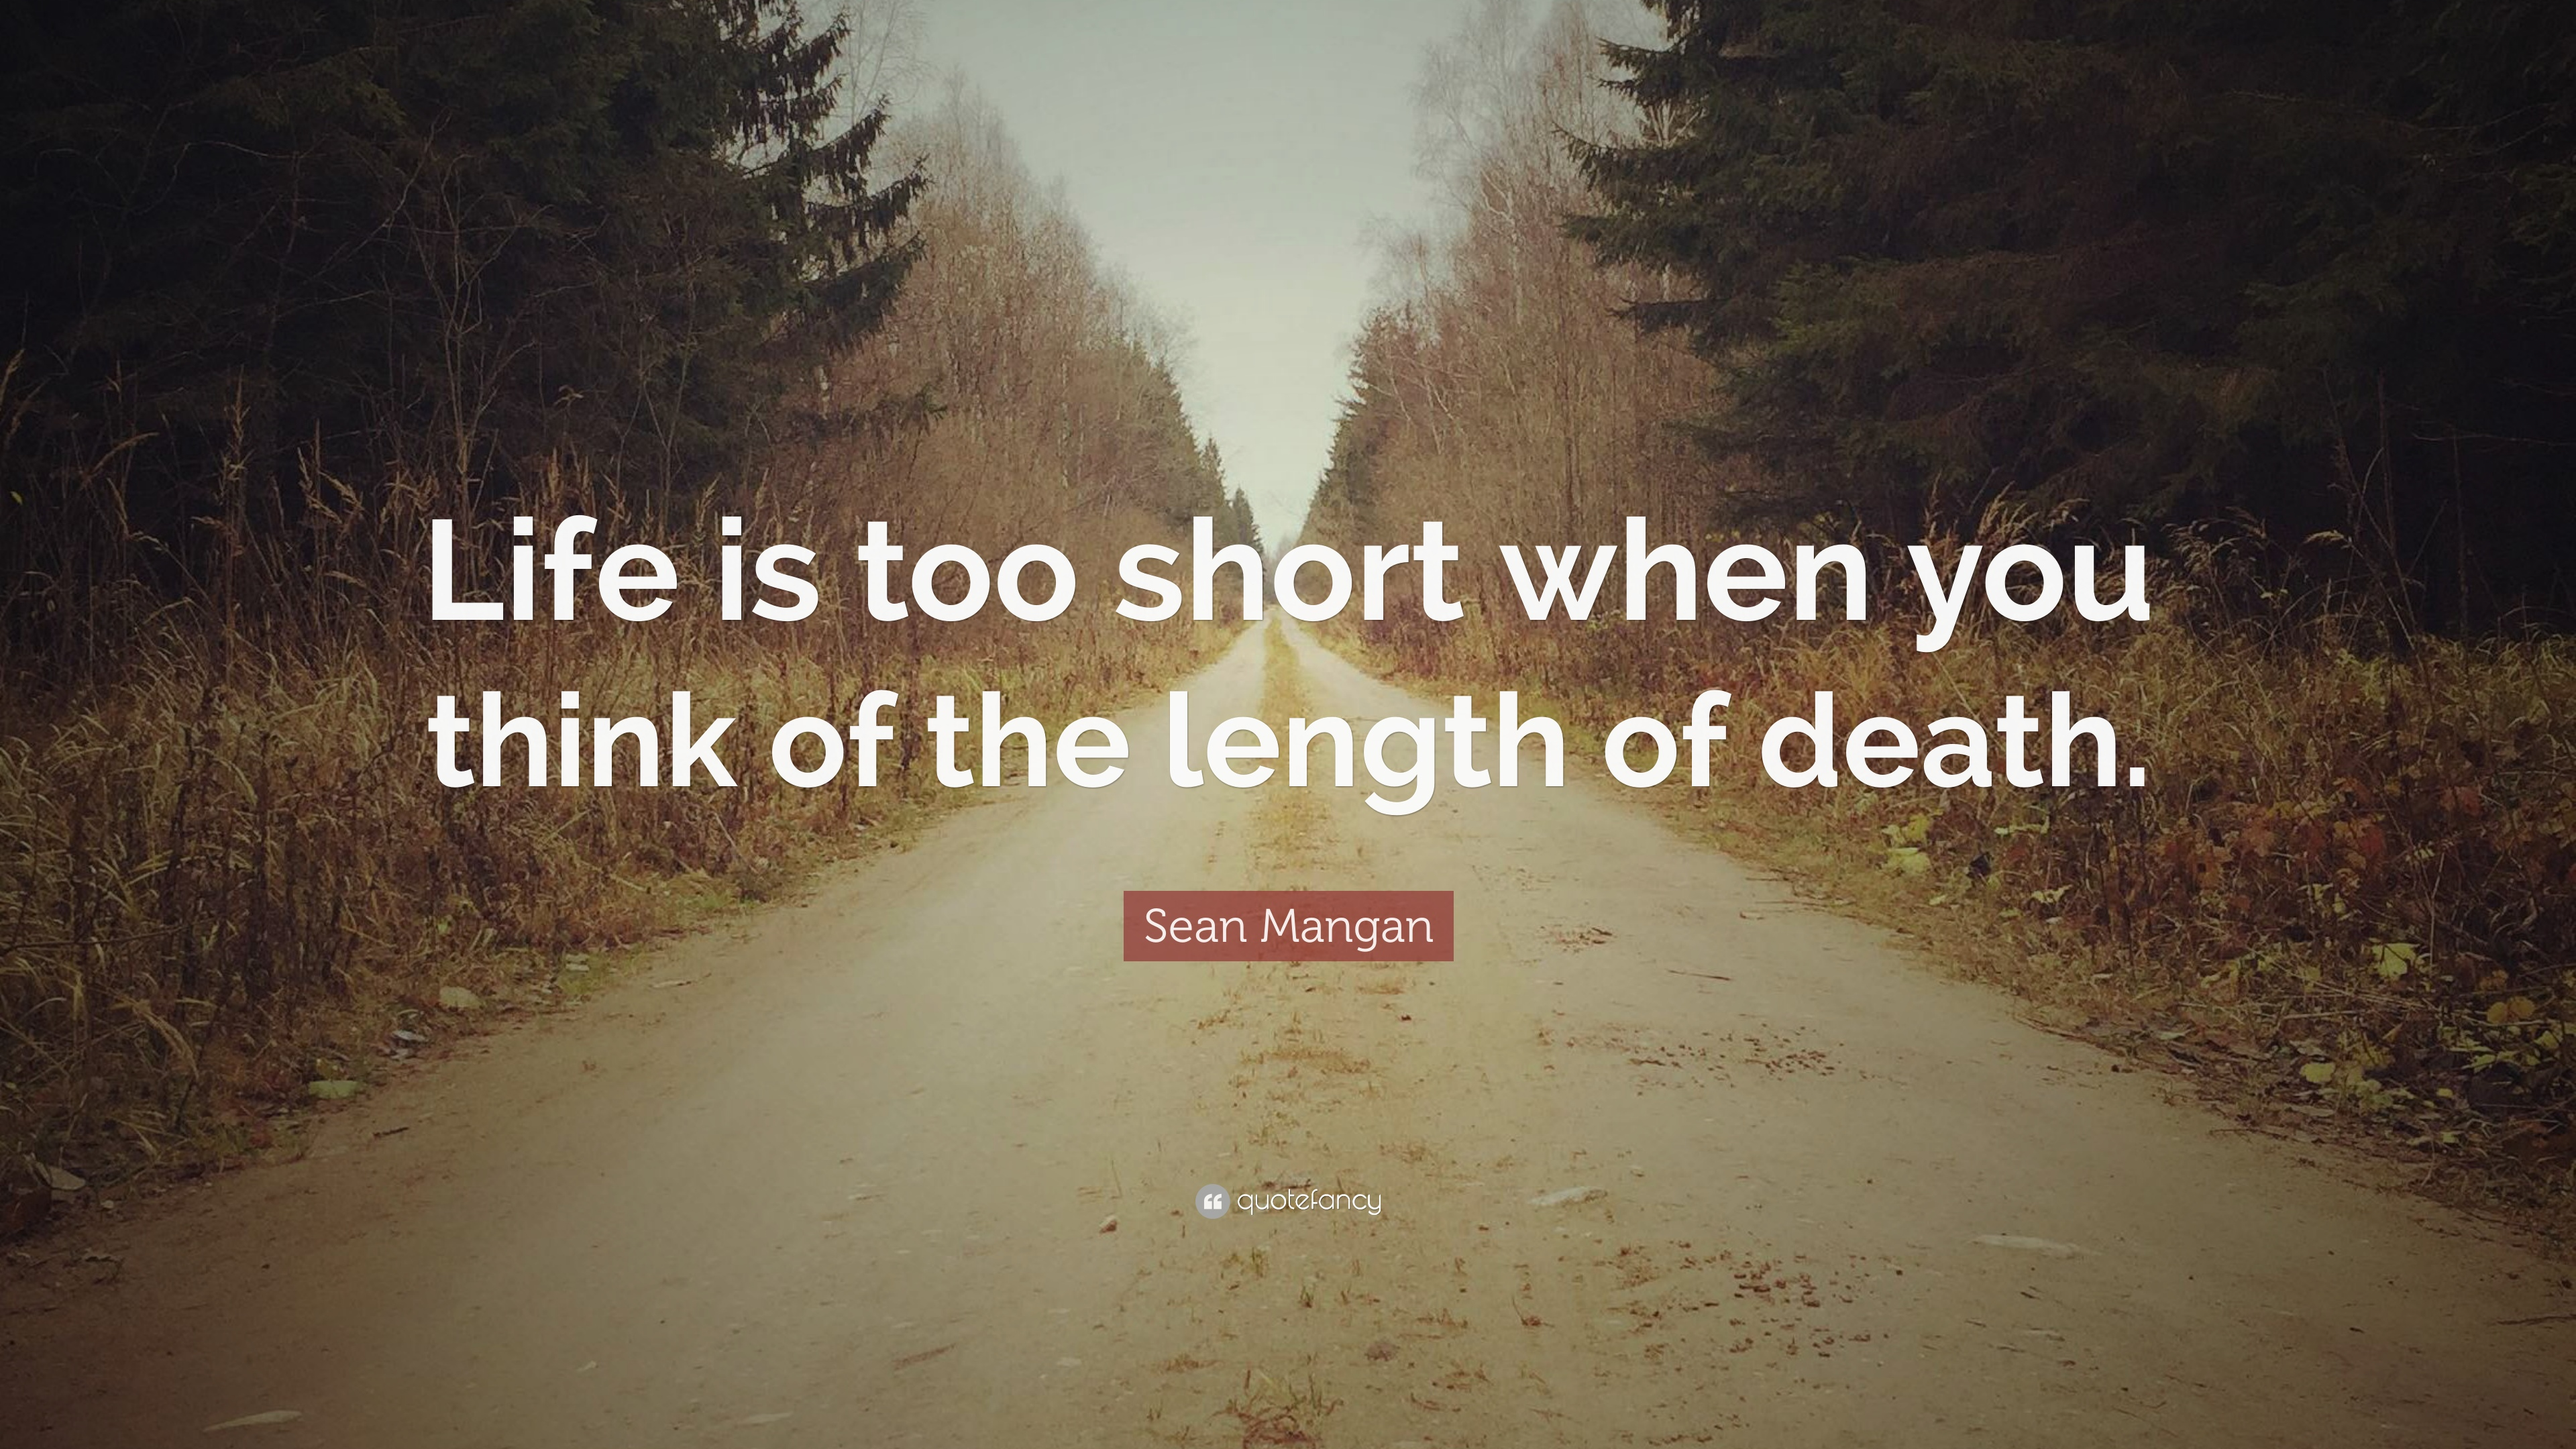 Sean Mangan Quote Life Is Too Short When You Think Of The Length